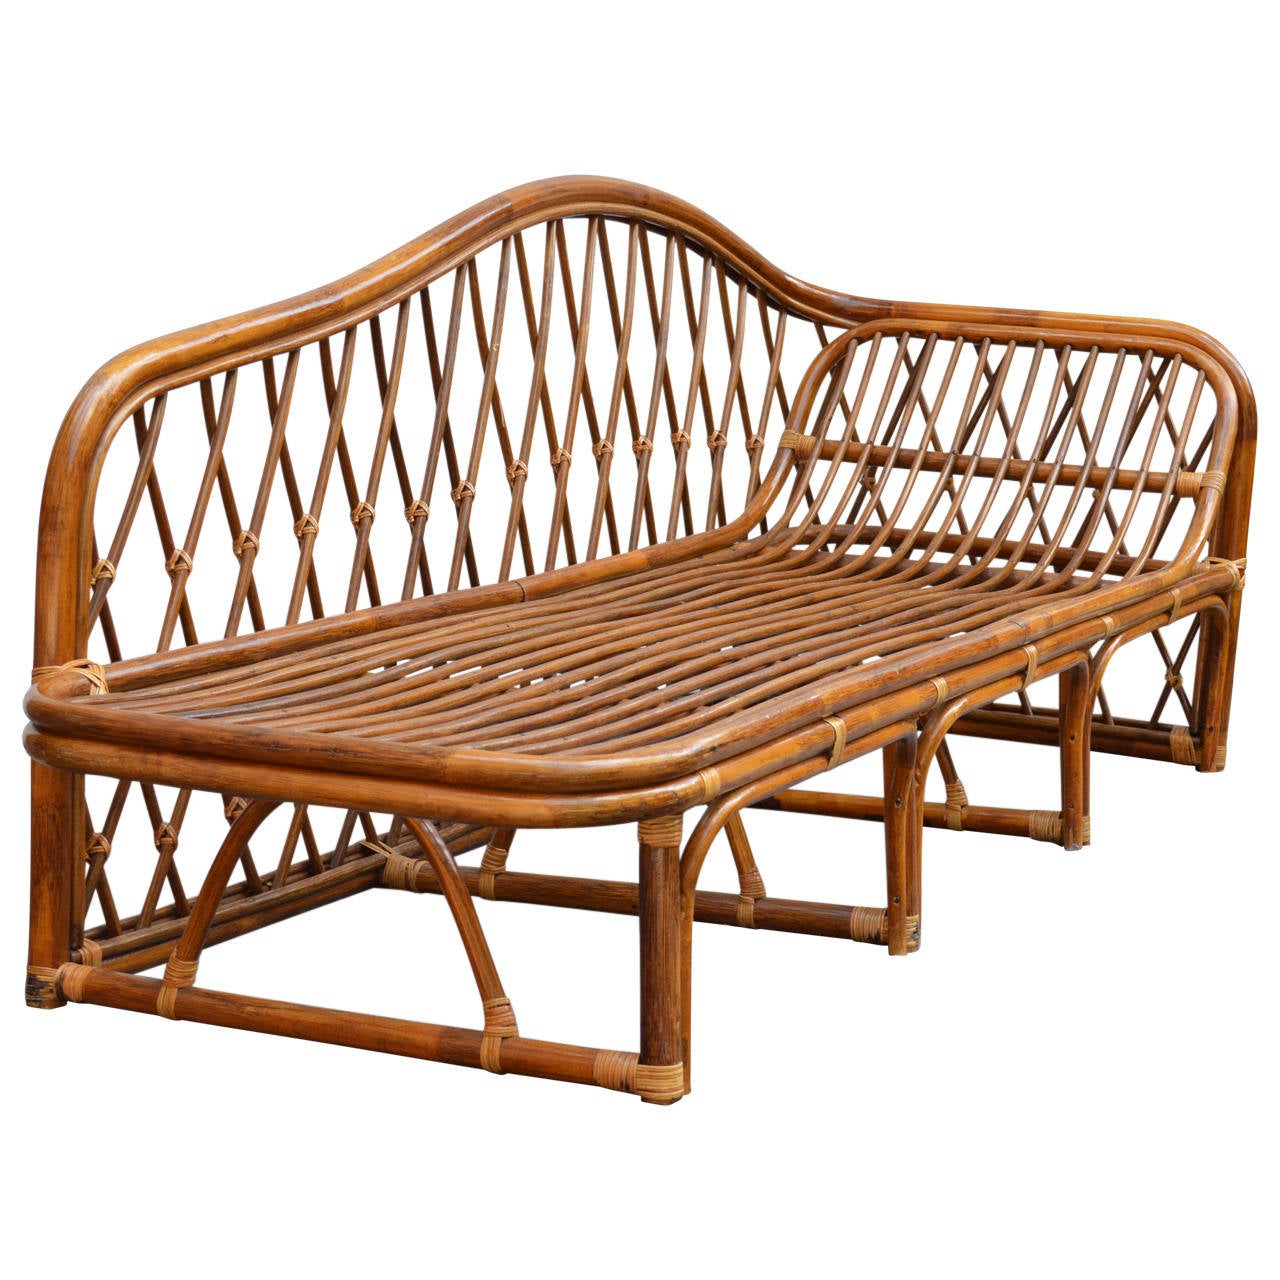 Vintage rattan chaise lounge at 1stdibs for Cane chaise lounge furniture